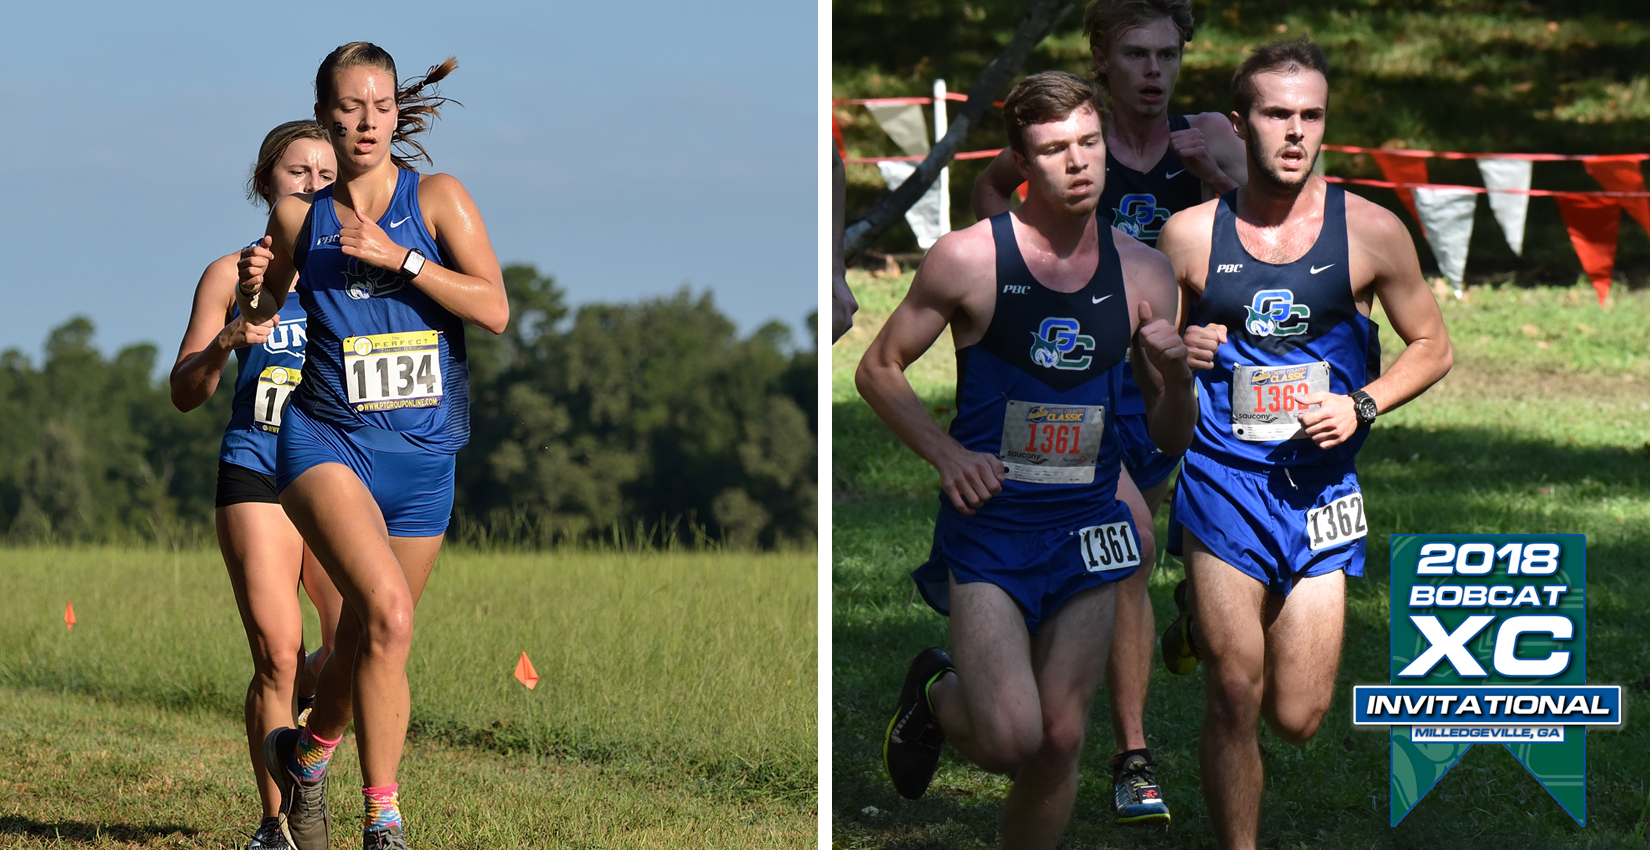 Cross Country Announces Teams Participating in Upcoming Bobcat Invitational